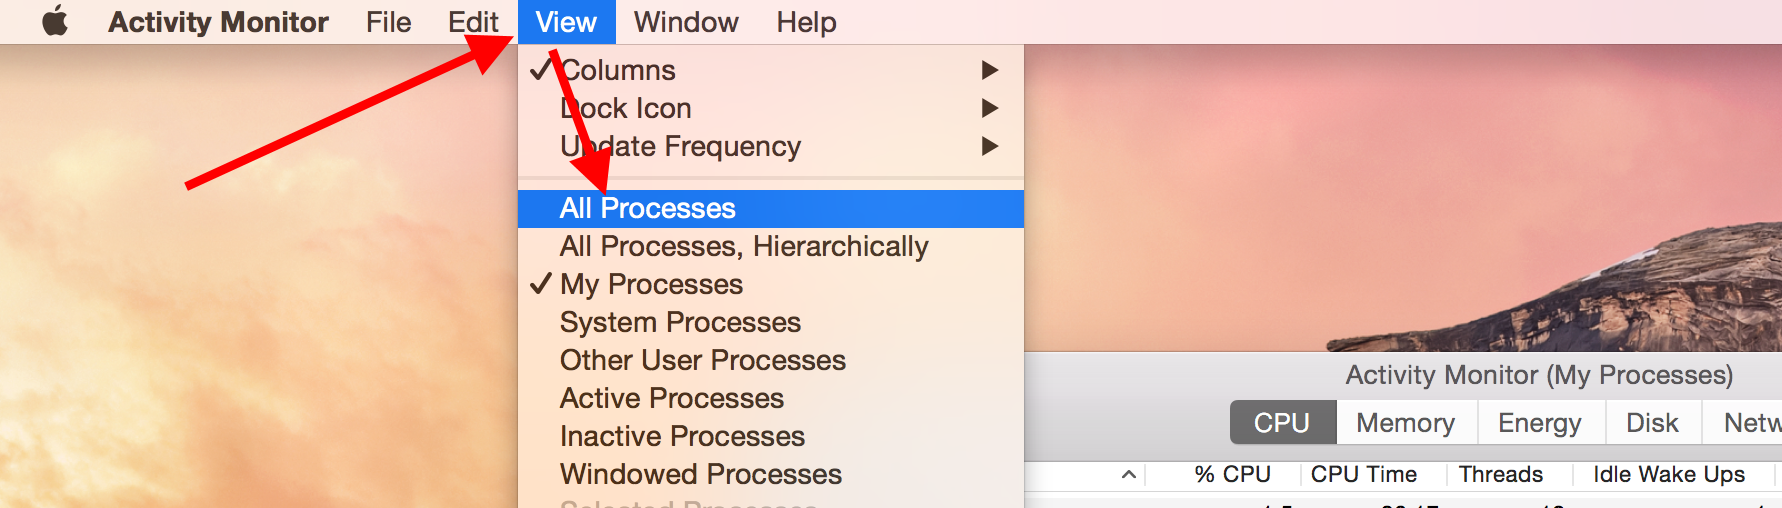 "Screencap showing ""All Processes"""